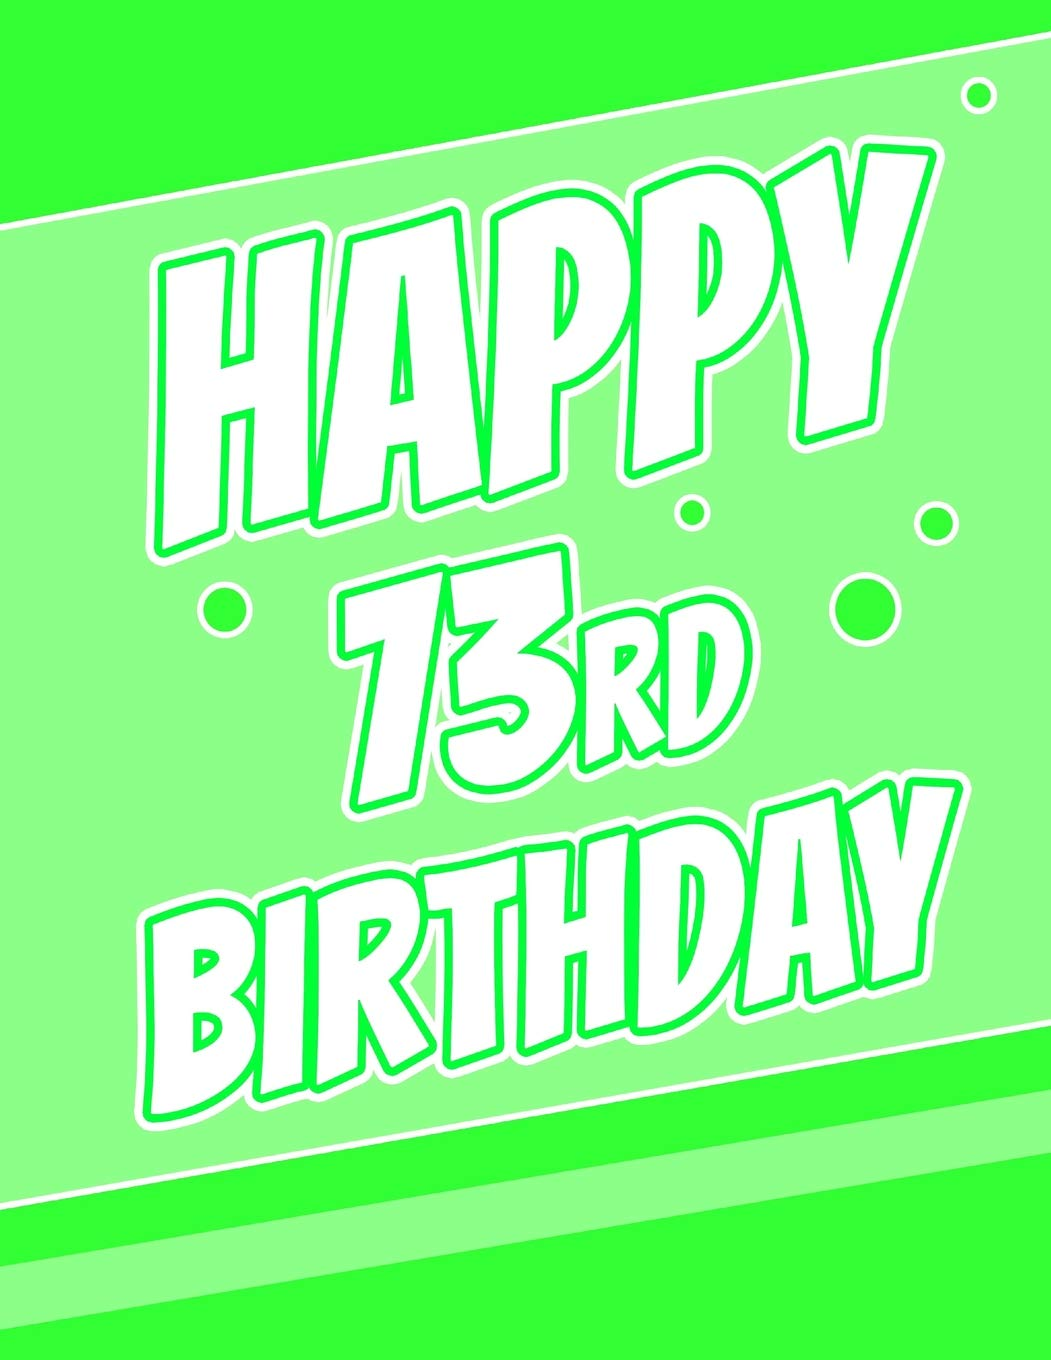 Than A Birthday Card Password Keeper Or Notebook Groovy Green Record Email Address Usernames Passwords Security Grandpa Large Print Book